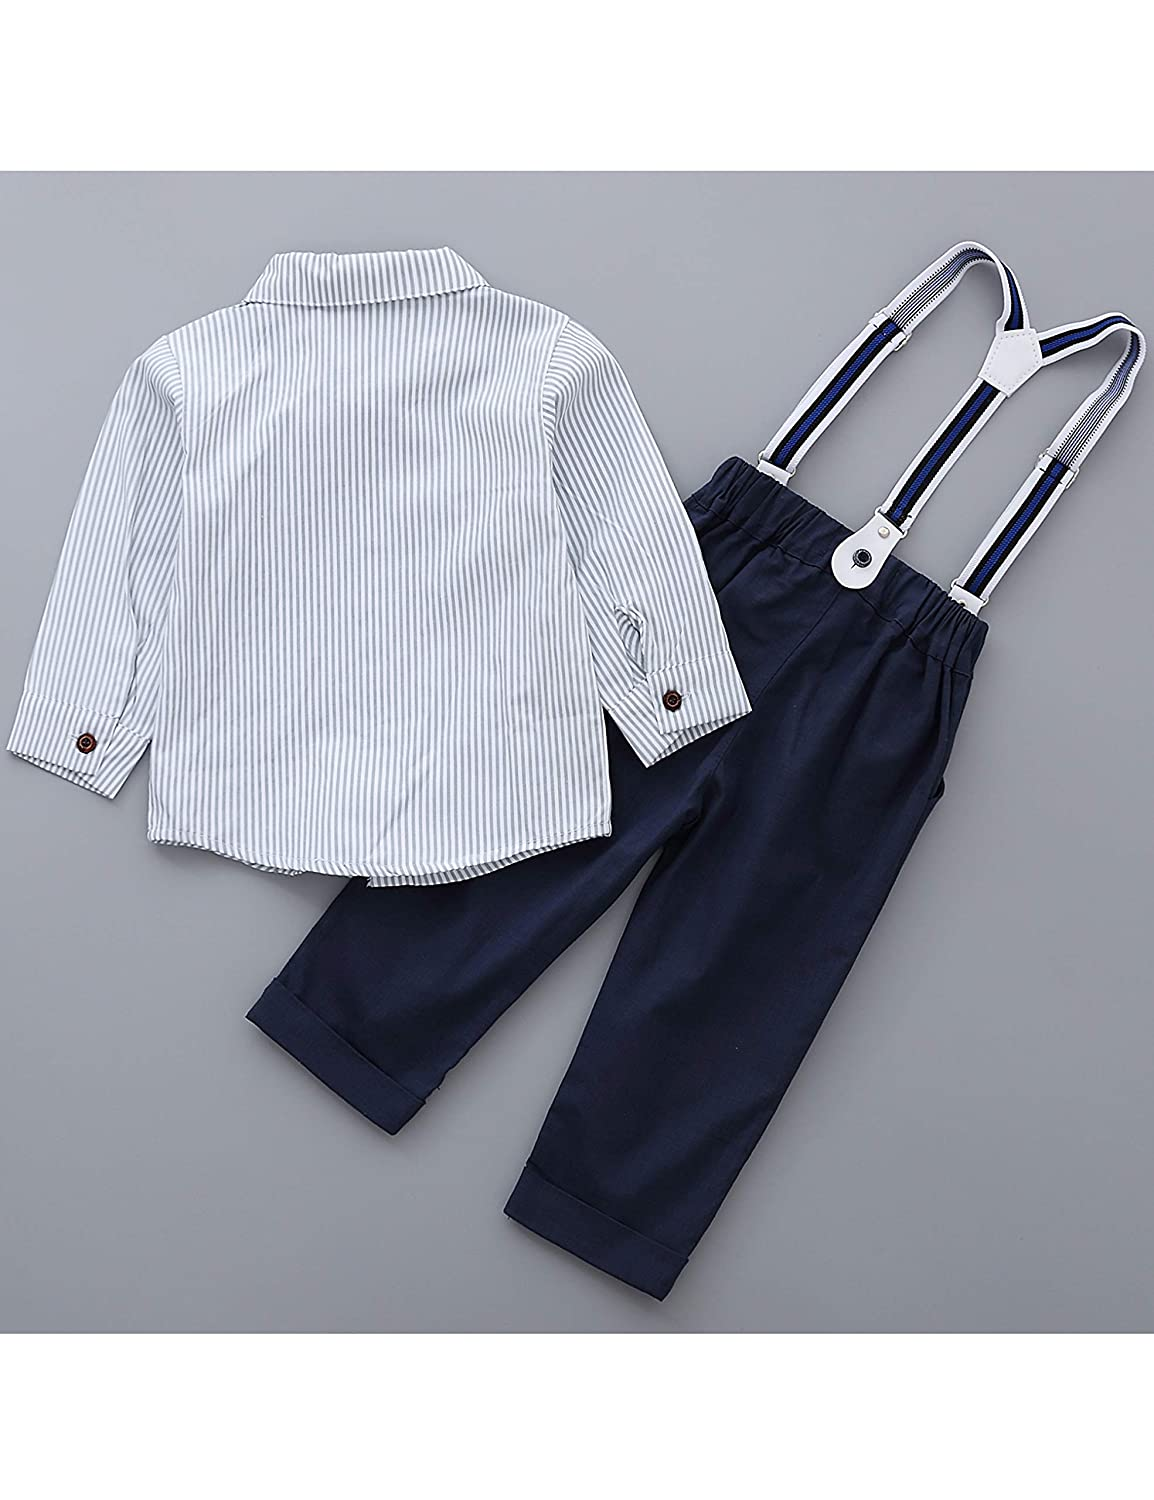 1-5 Years Toddler Little Boys Long Sleeve Bowtie Shirts with Suspenders Pants Genterman Clothes Outfits Suits Set